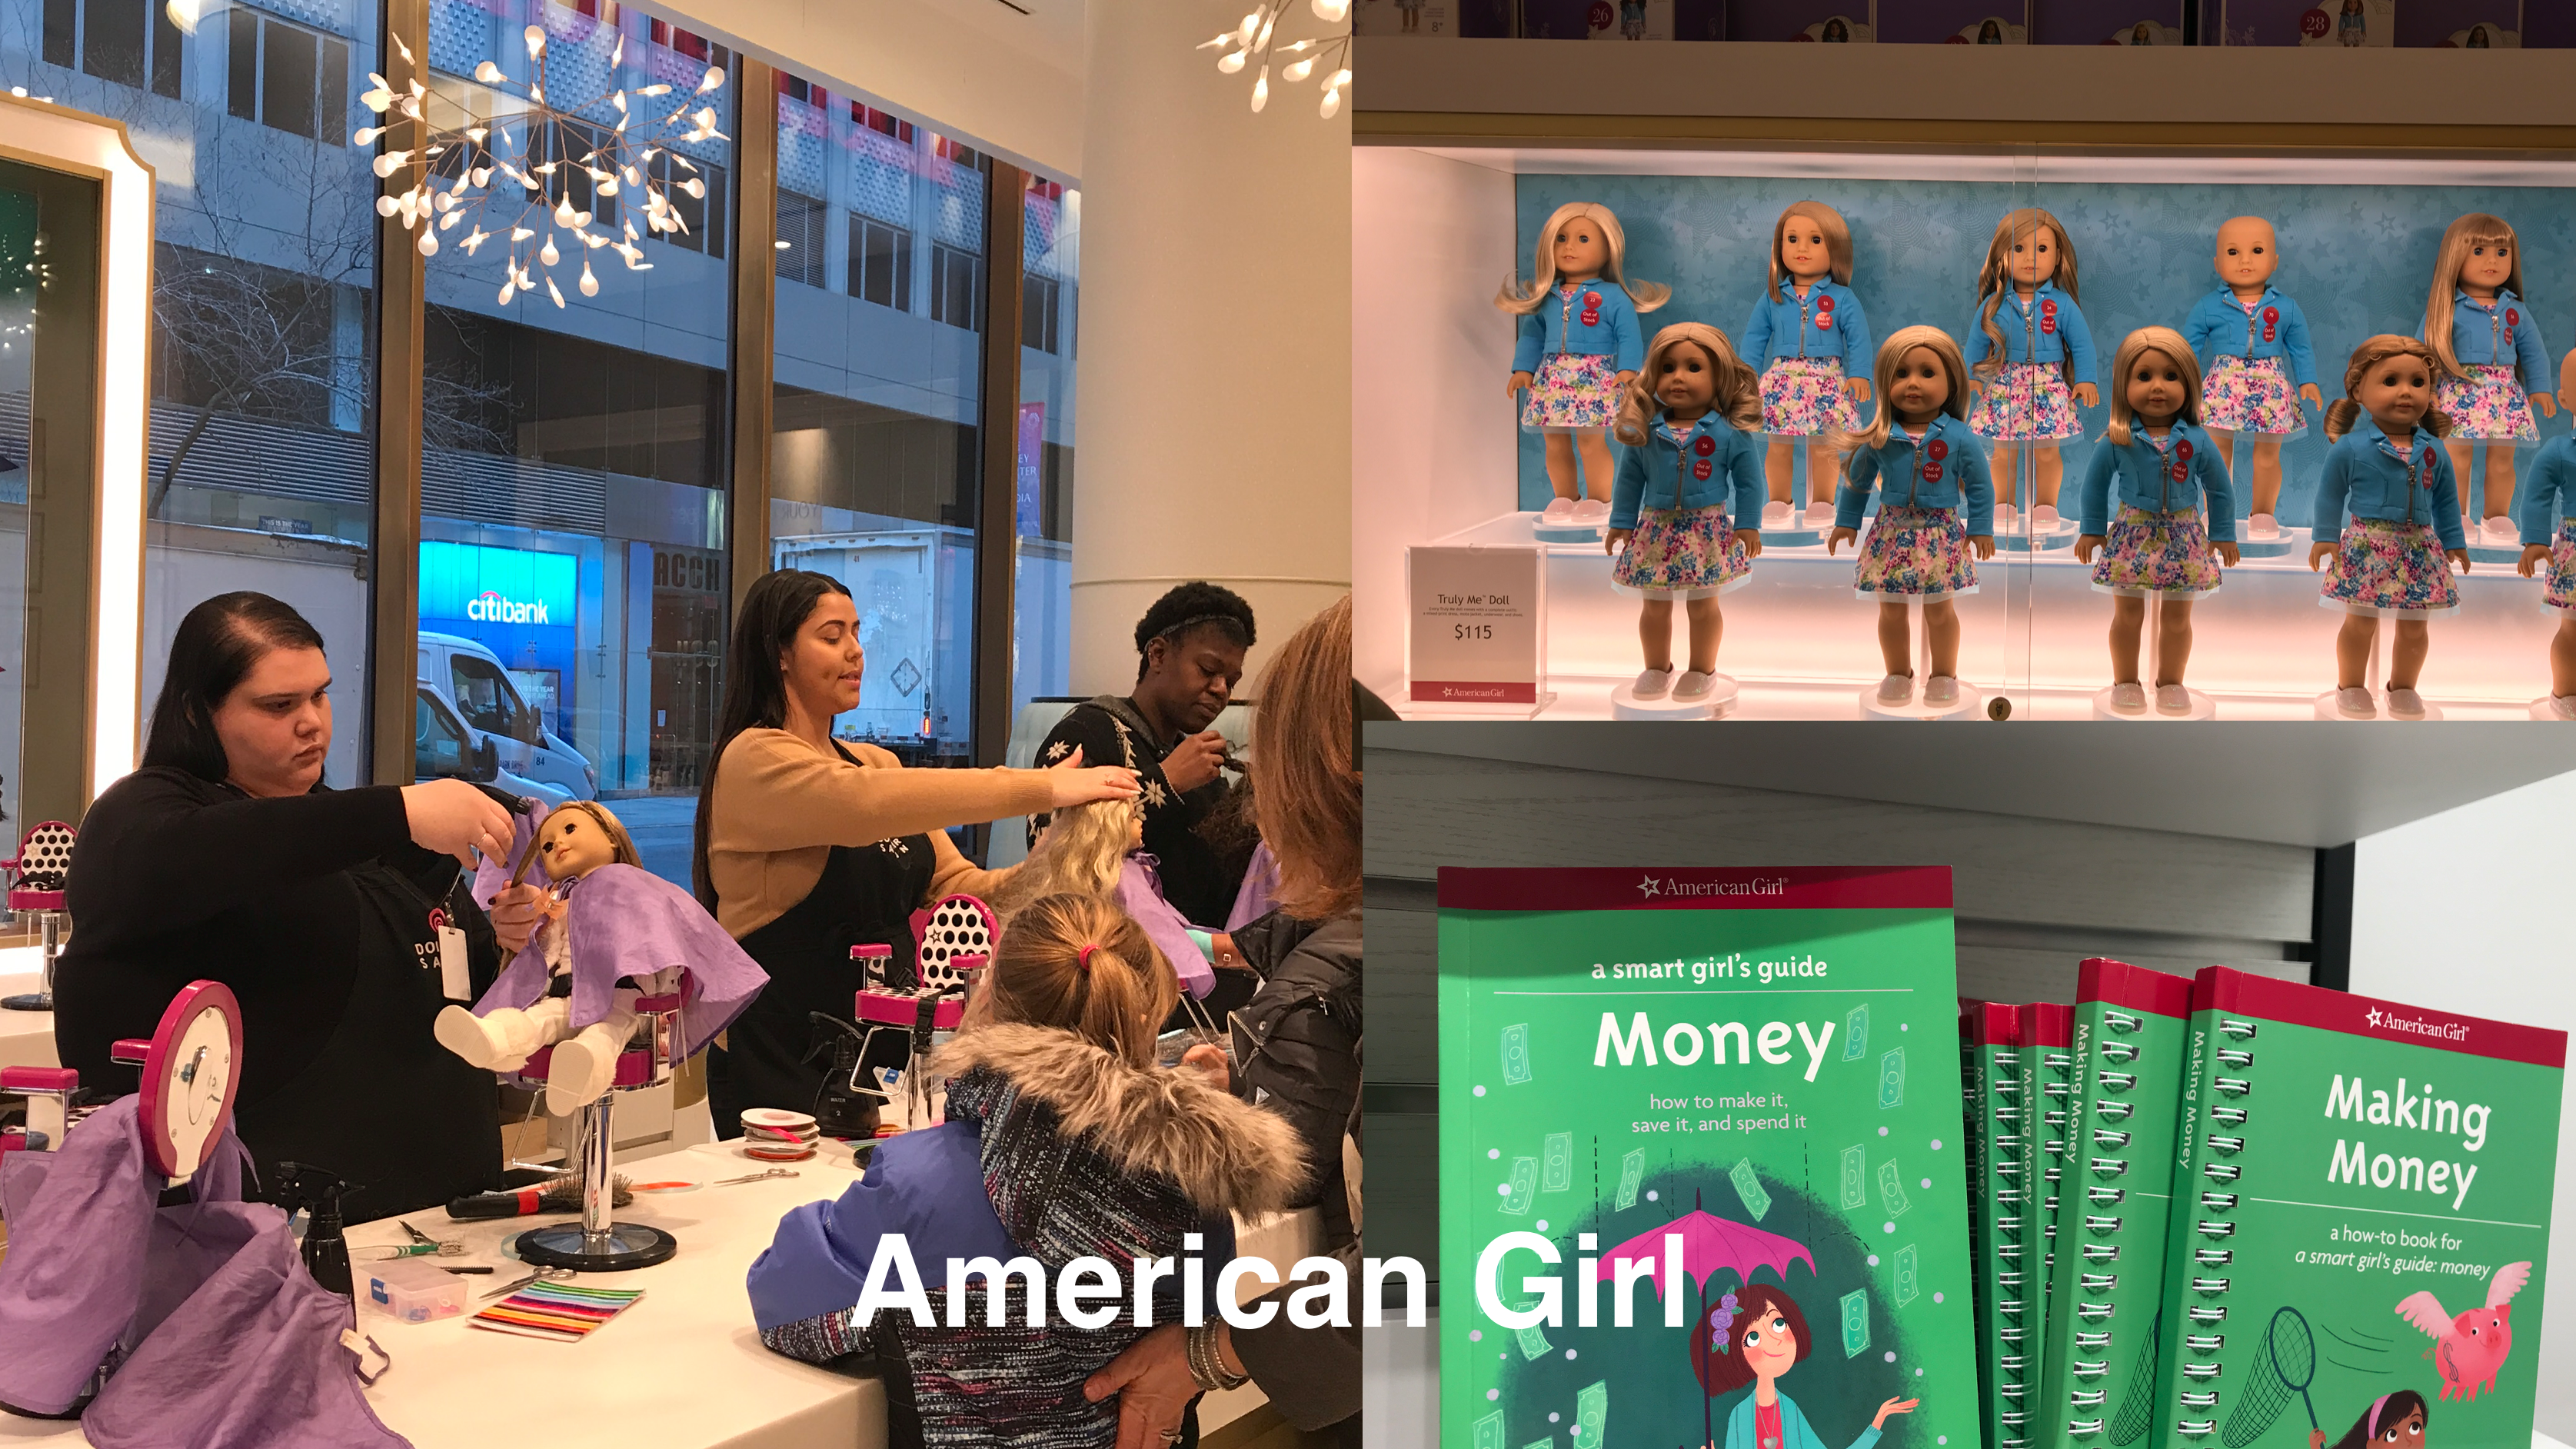 American Girl concept store